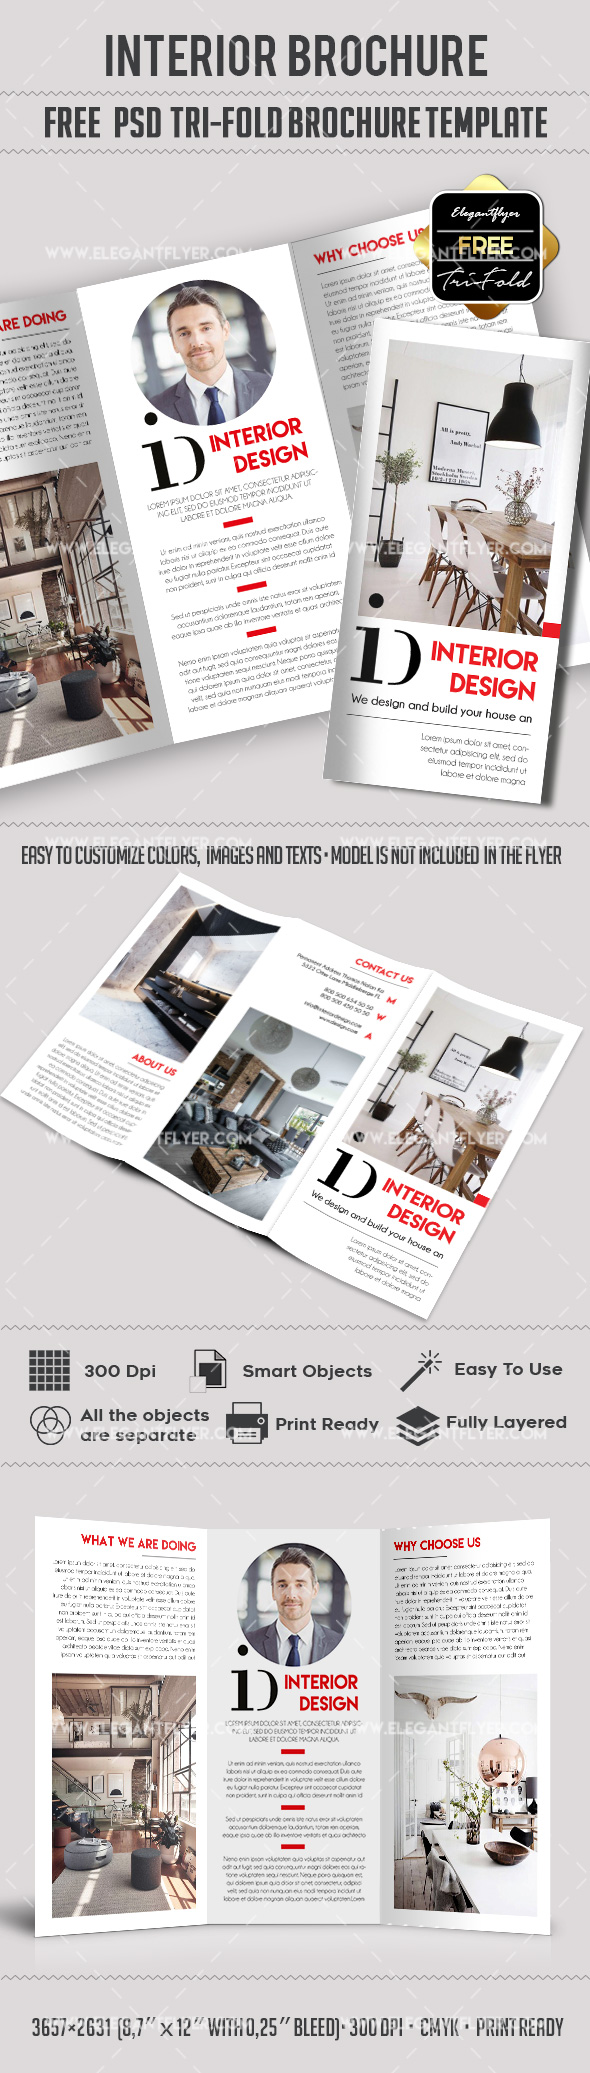 Interior design free tri fold brochure by elegantflyer for Awesome tri fold brochure design